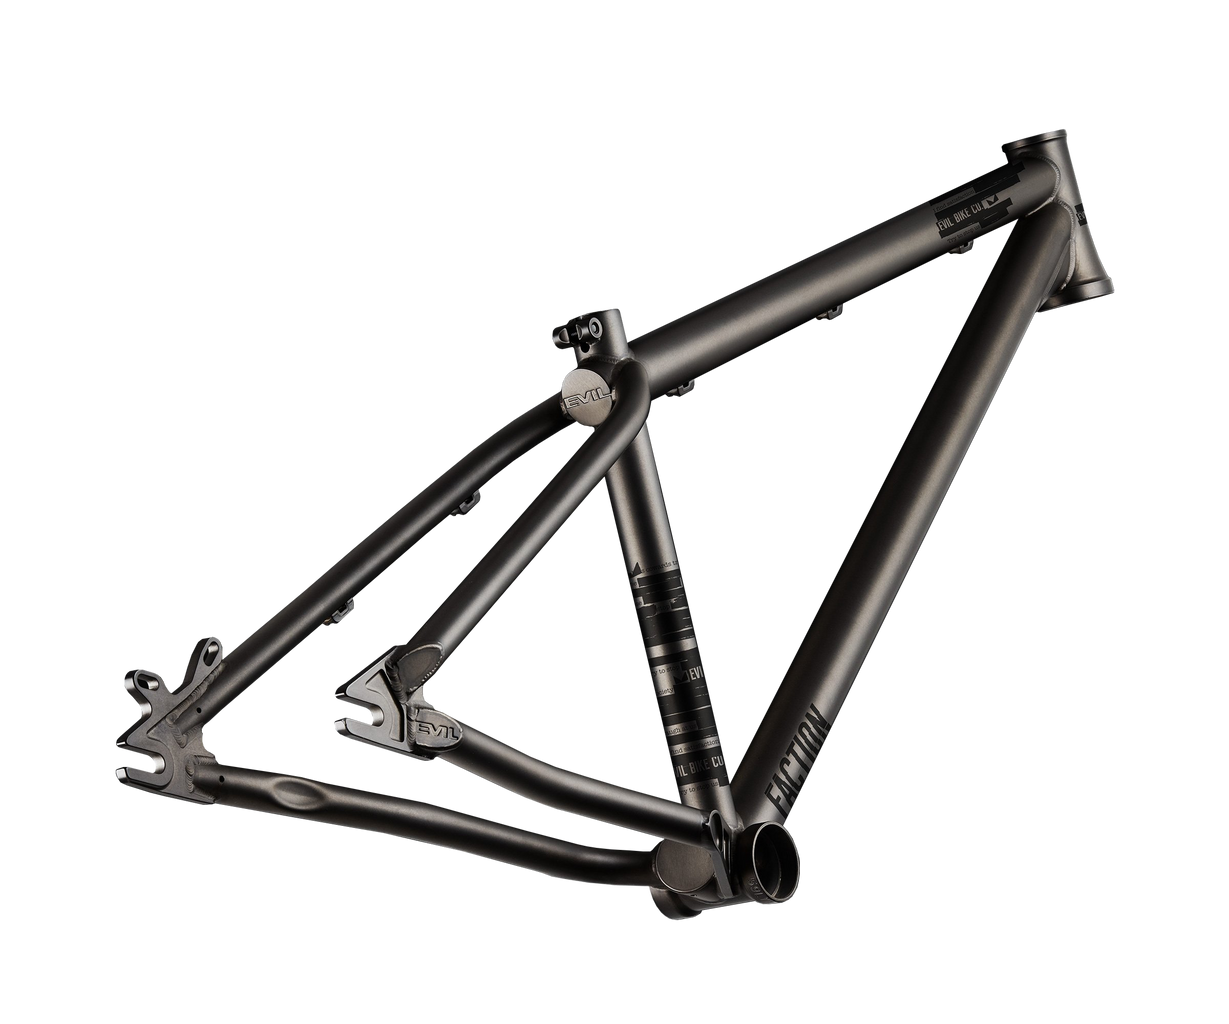 Evil Faction 2 Dirt Jumper Frame Only - Raw Black Rust (S,MD,LG) MPN: EVIL-FACTION2 Mountain Frame Faction 2